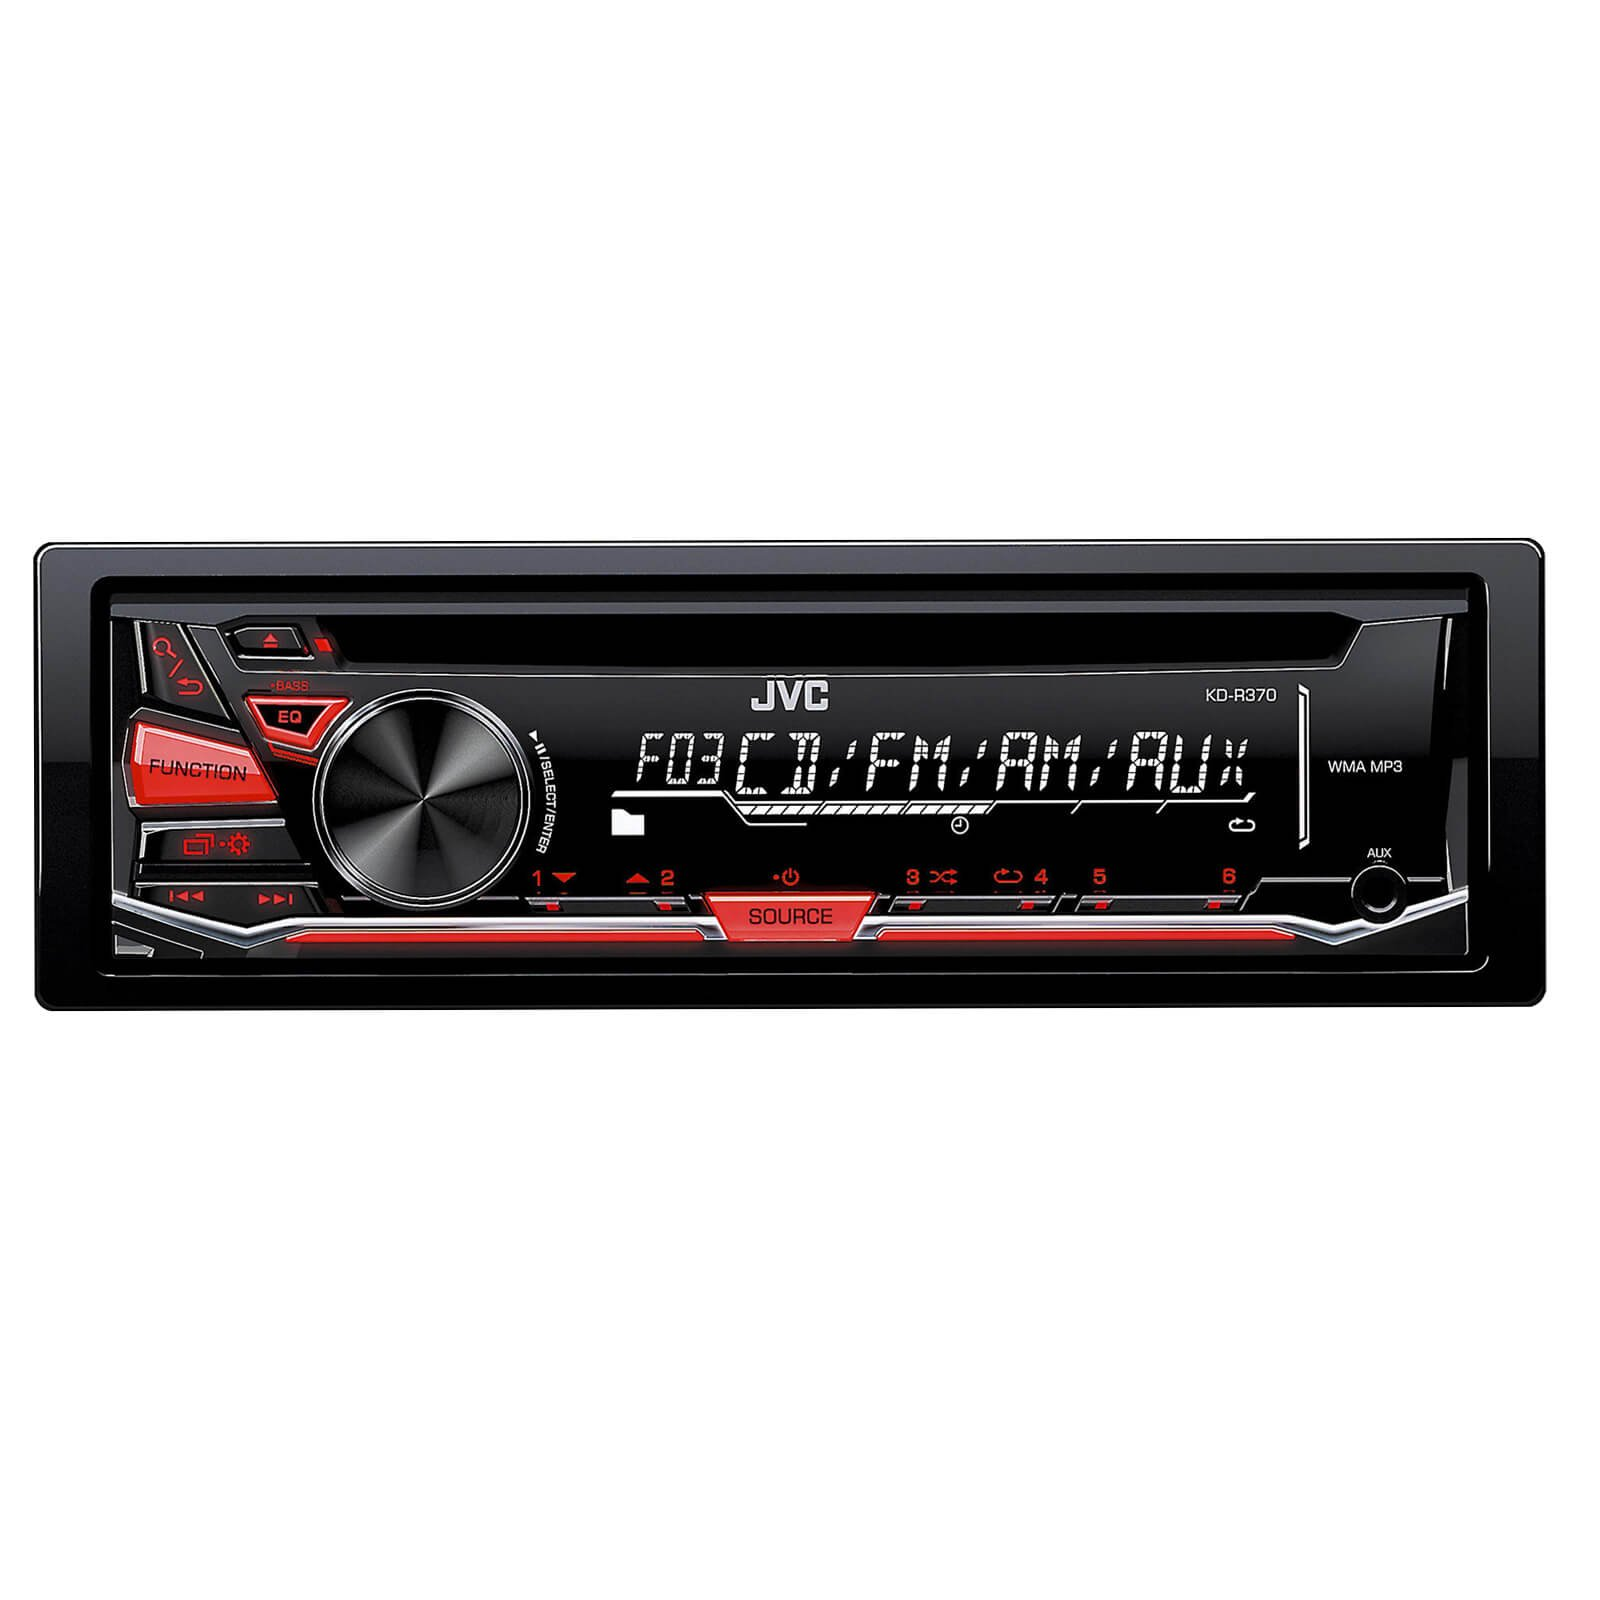 JVC KD-R370 CD/MP3 AM/FM Radio Player Car Receiver Bundle Combo With 2x DR6820 300-Watt 6x8'' Inch Vehicle Coaxial Speakers + 2x DR620 6.5'' Inch 2-Way Audio Speakers + Enrock 50 Feet 16-Gauge Wire by JVCAudioBundle (Image #2)